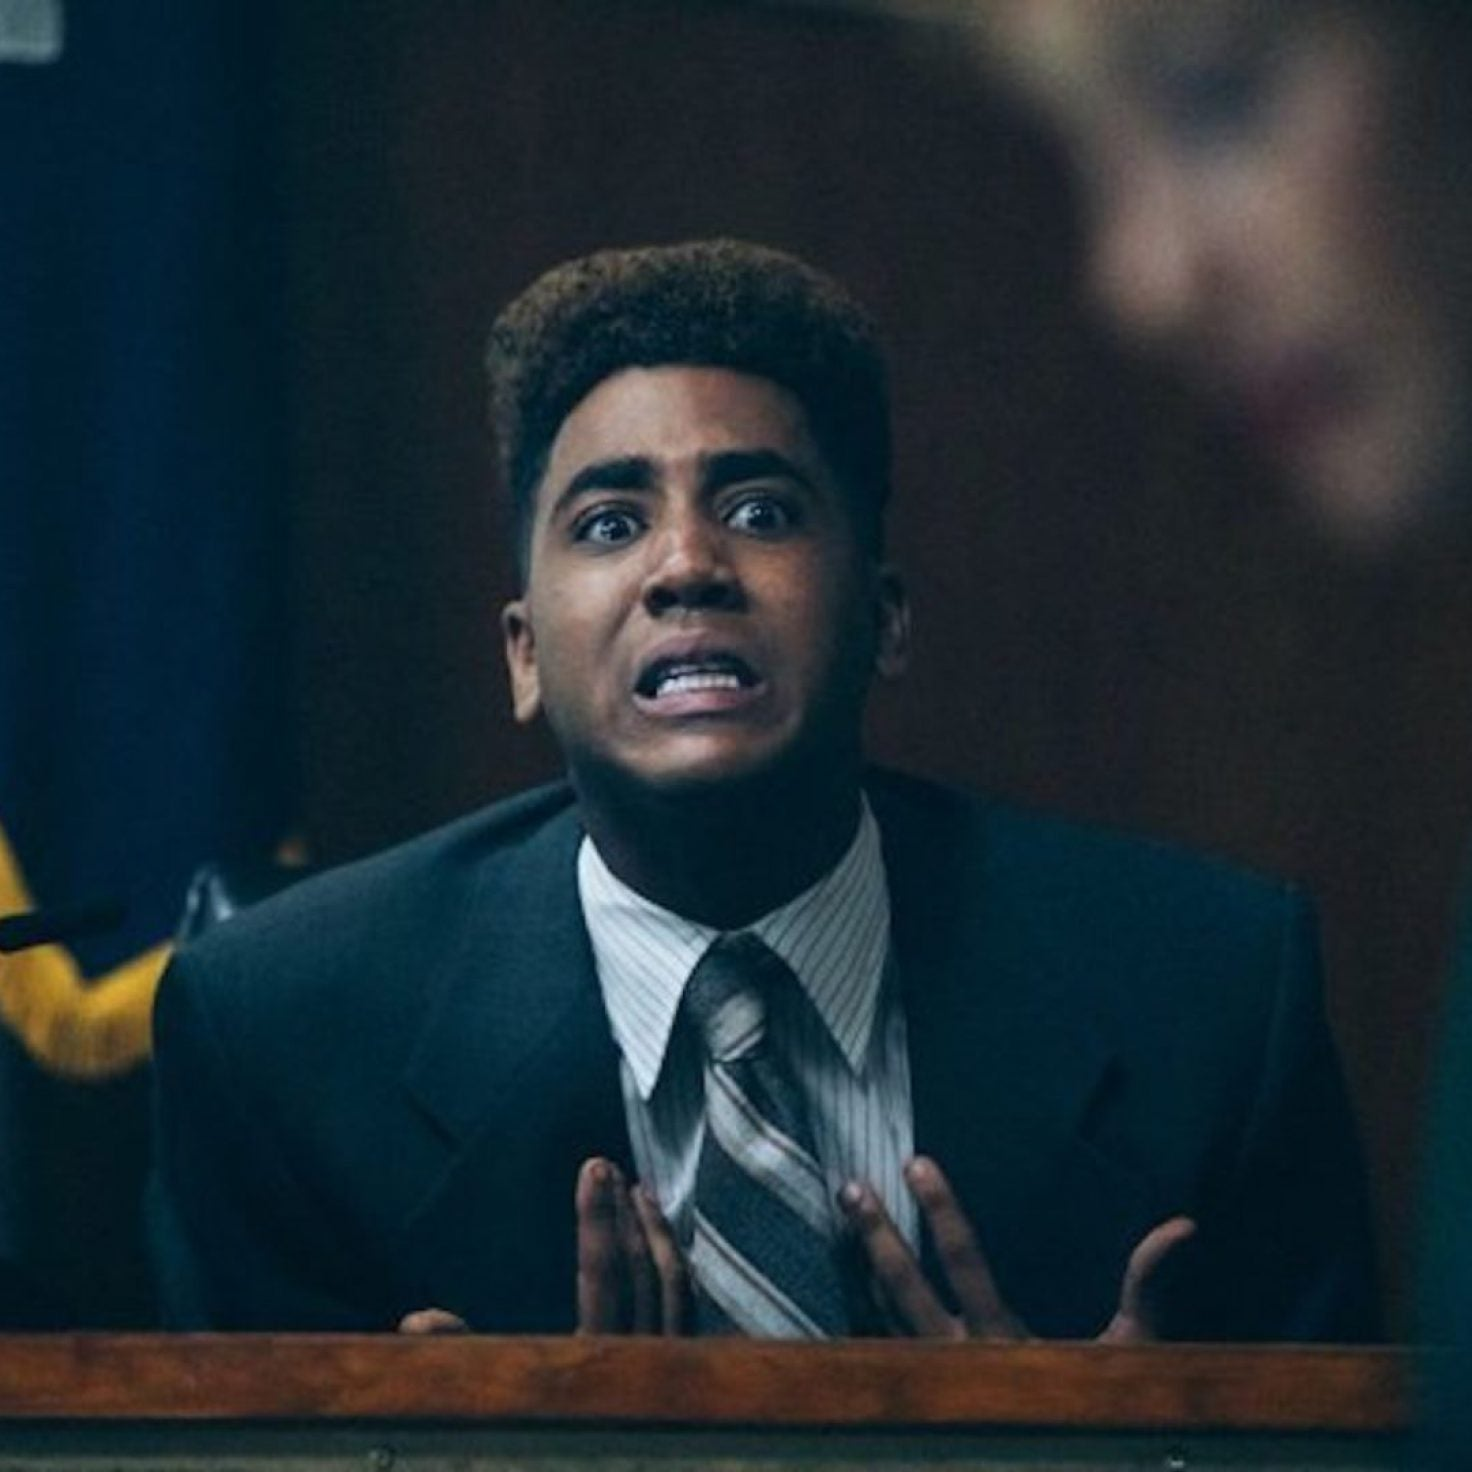 Netflix Calls Linda Fairstein's Lawsuit Over 'When They See Us' Portrayal 'Frivolous'